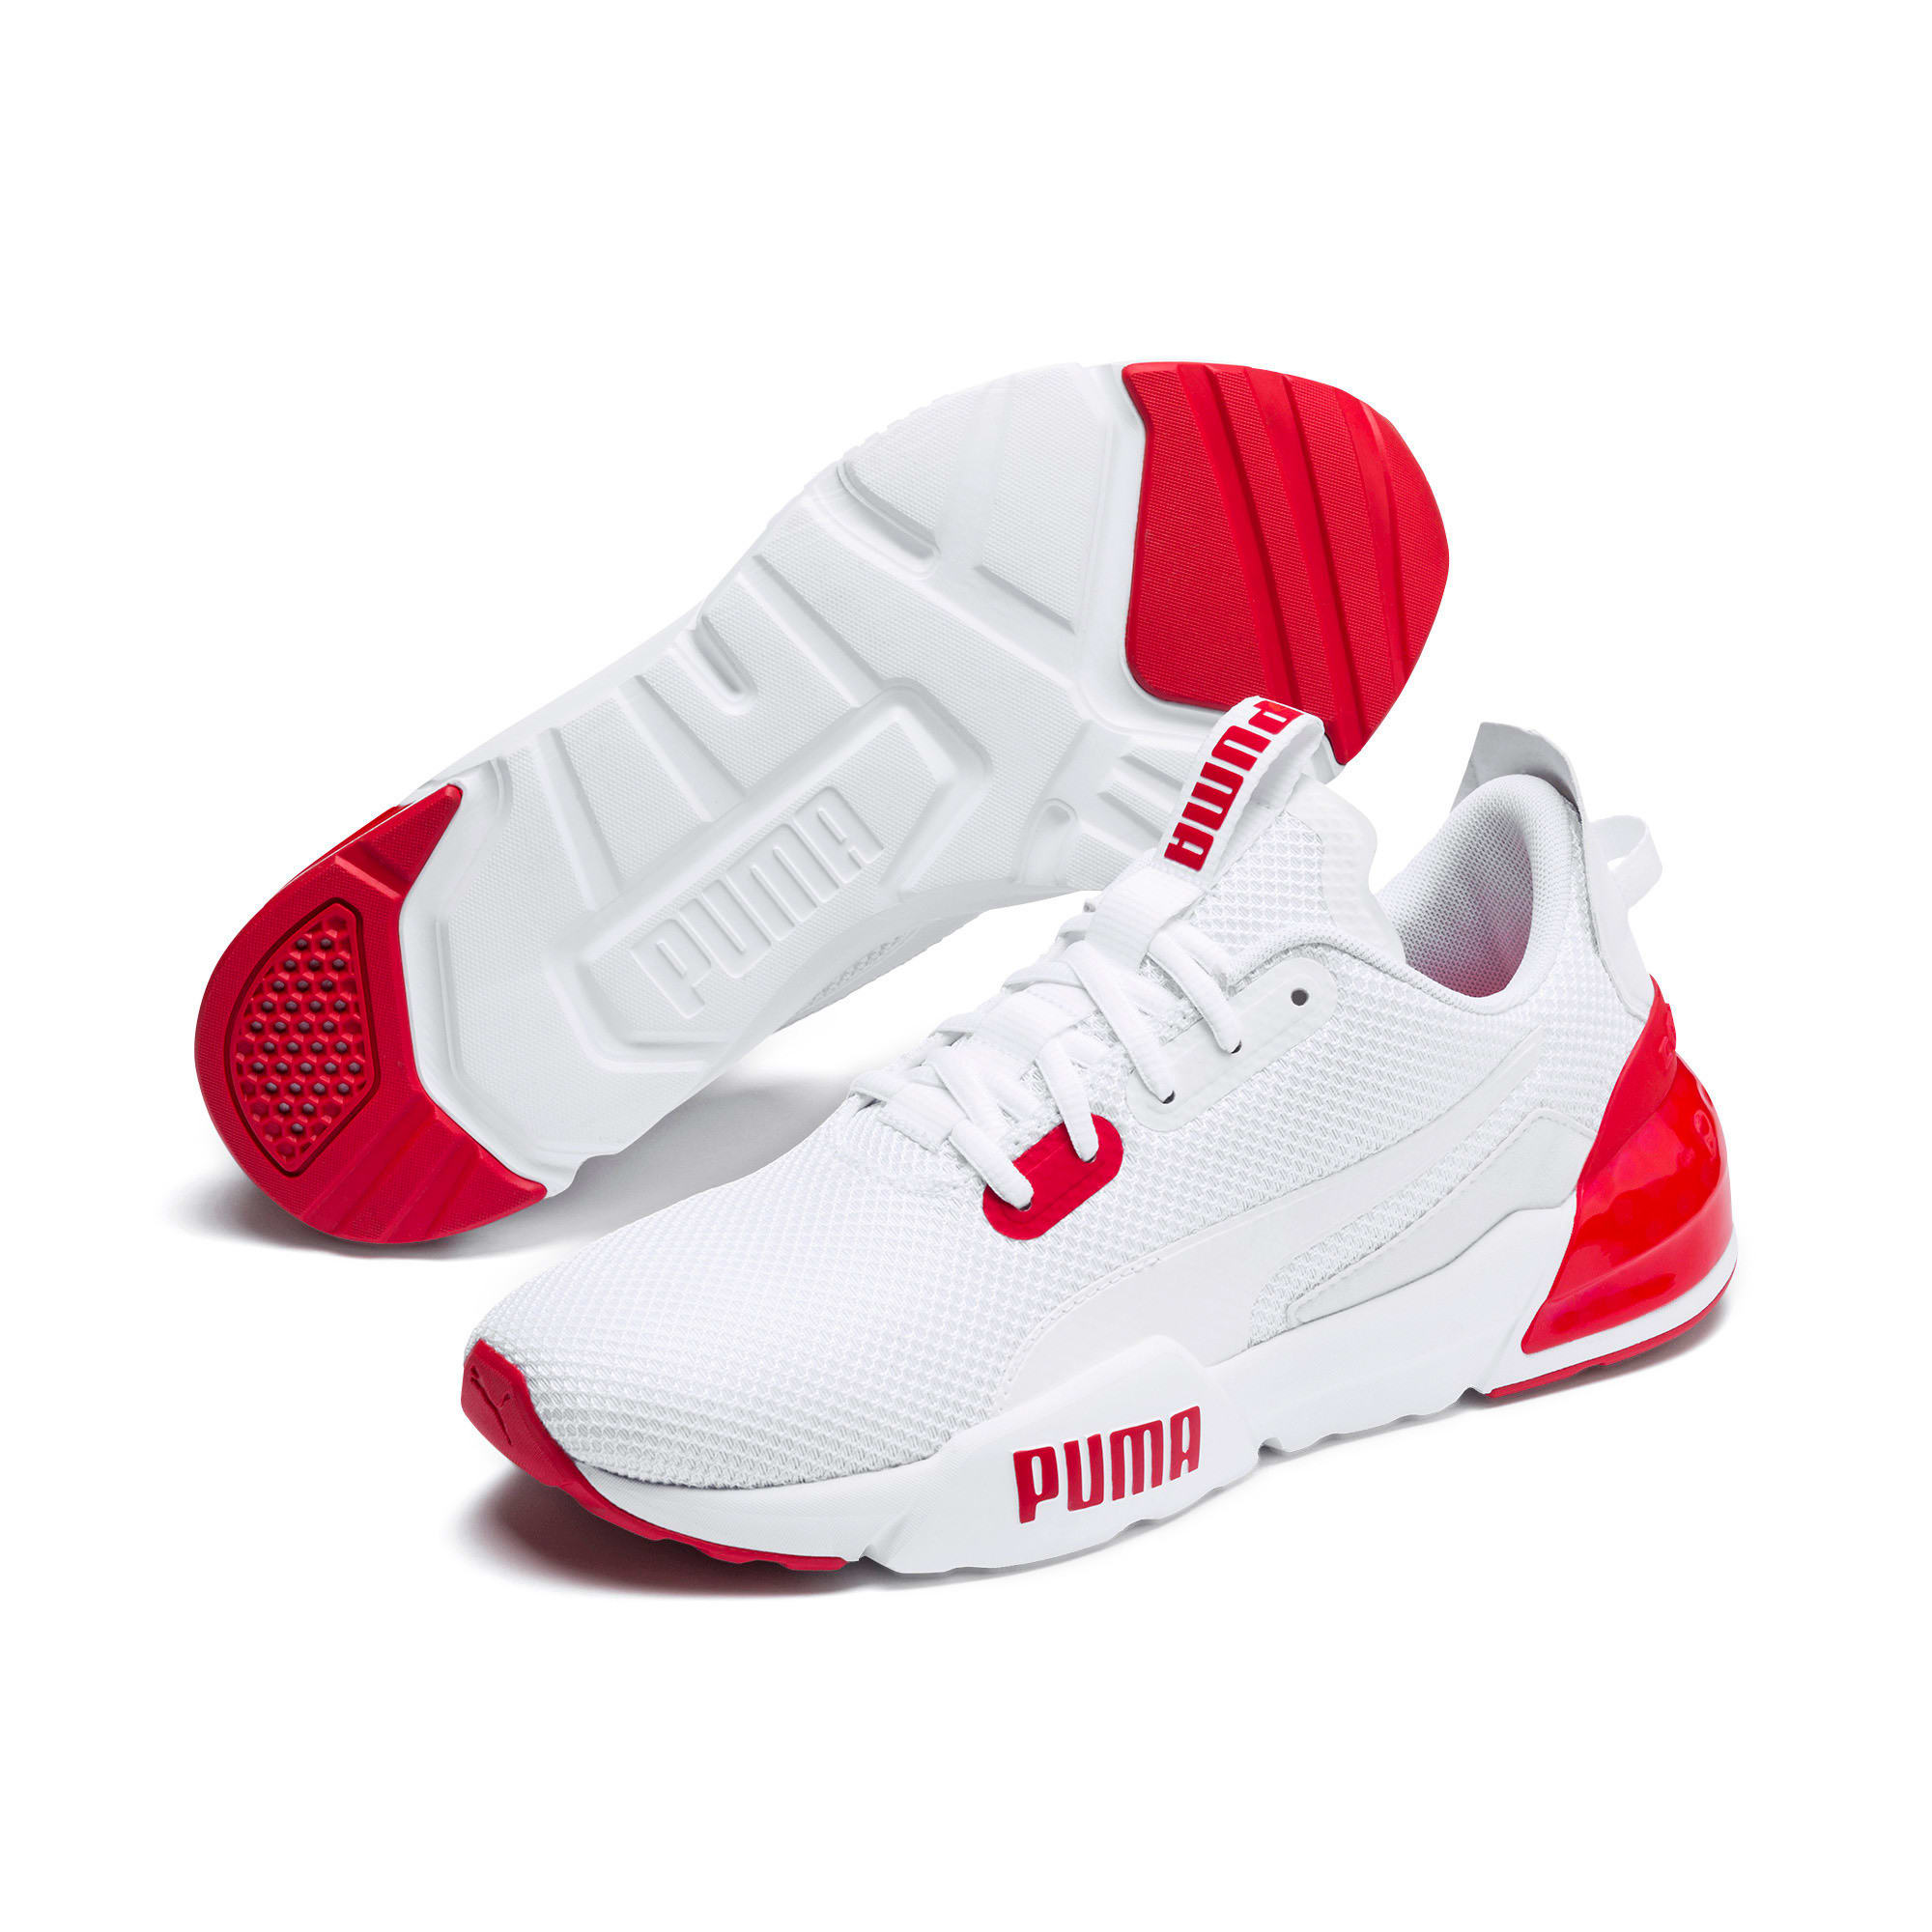 Thumbnail 3 of CELL Phase Men's Training Shoes, Puma White-High Risk Red, medium